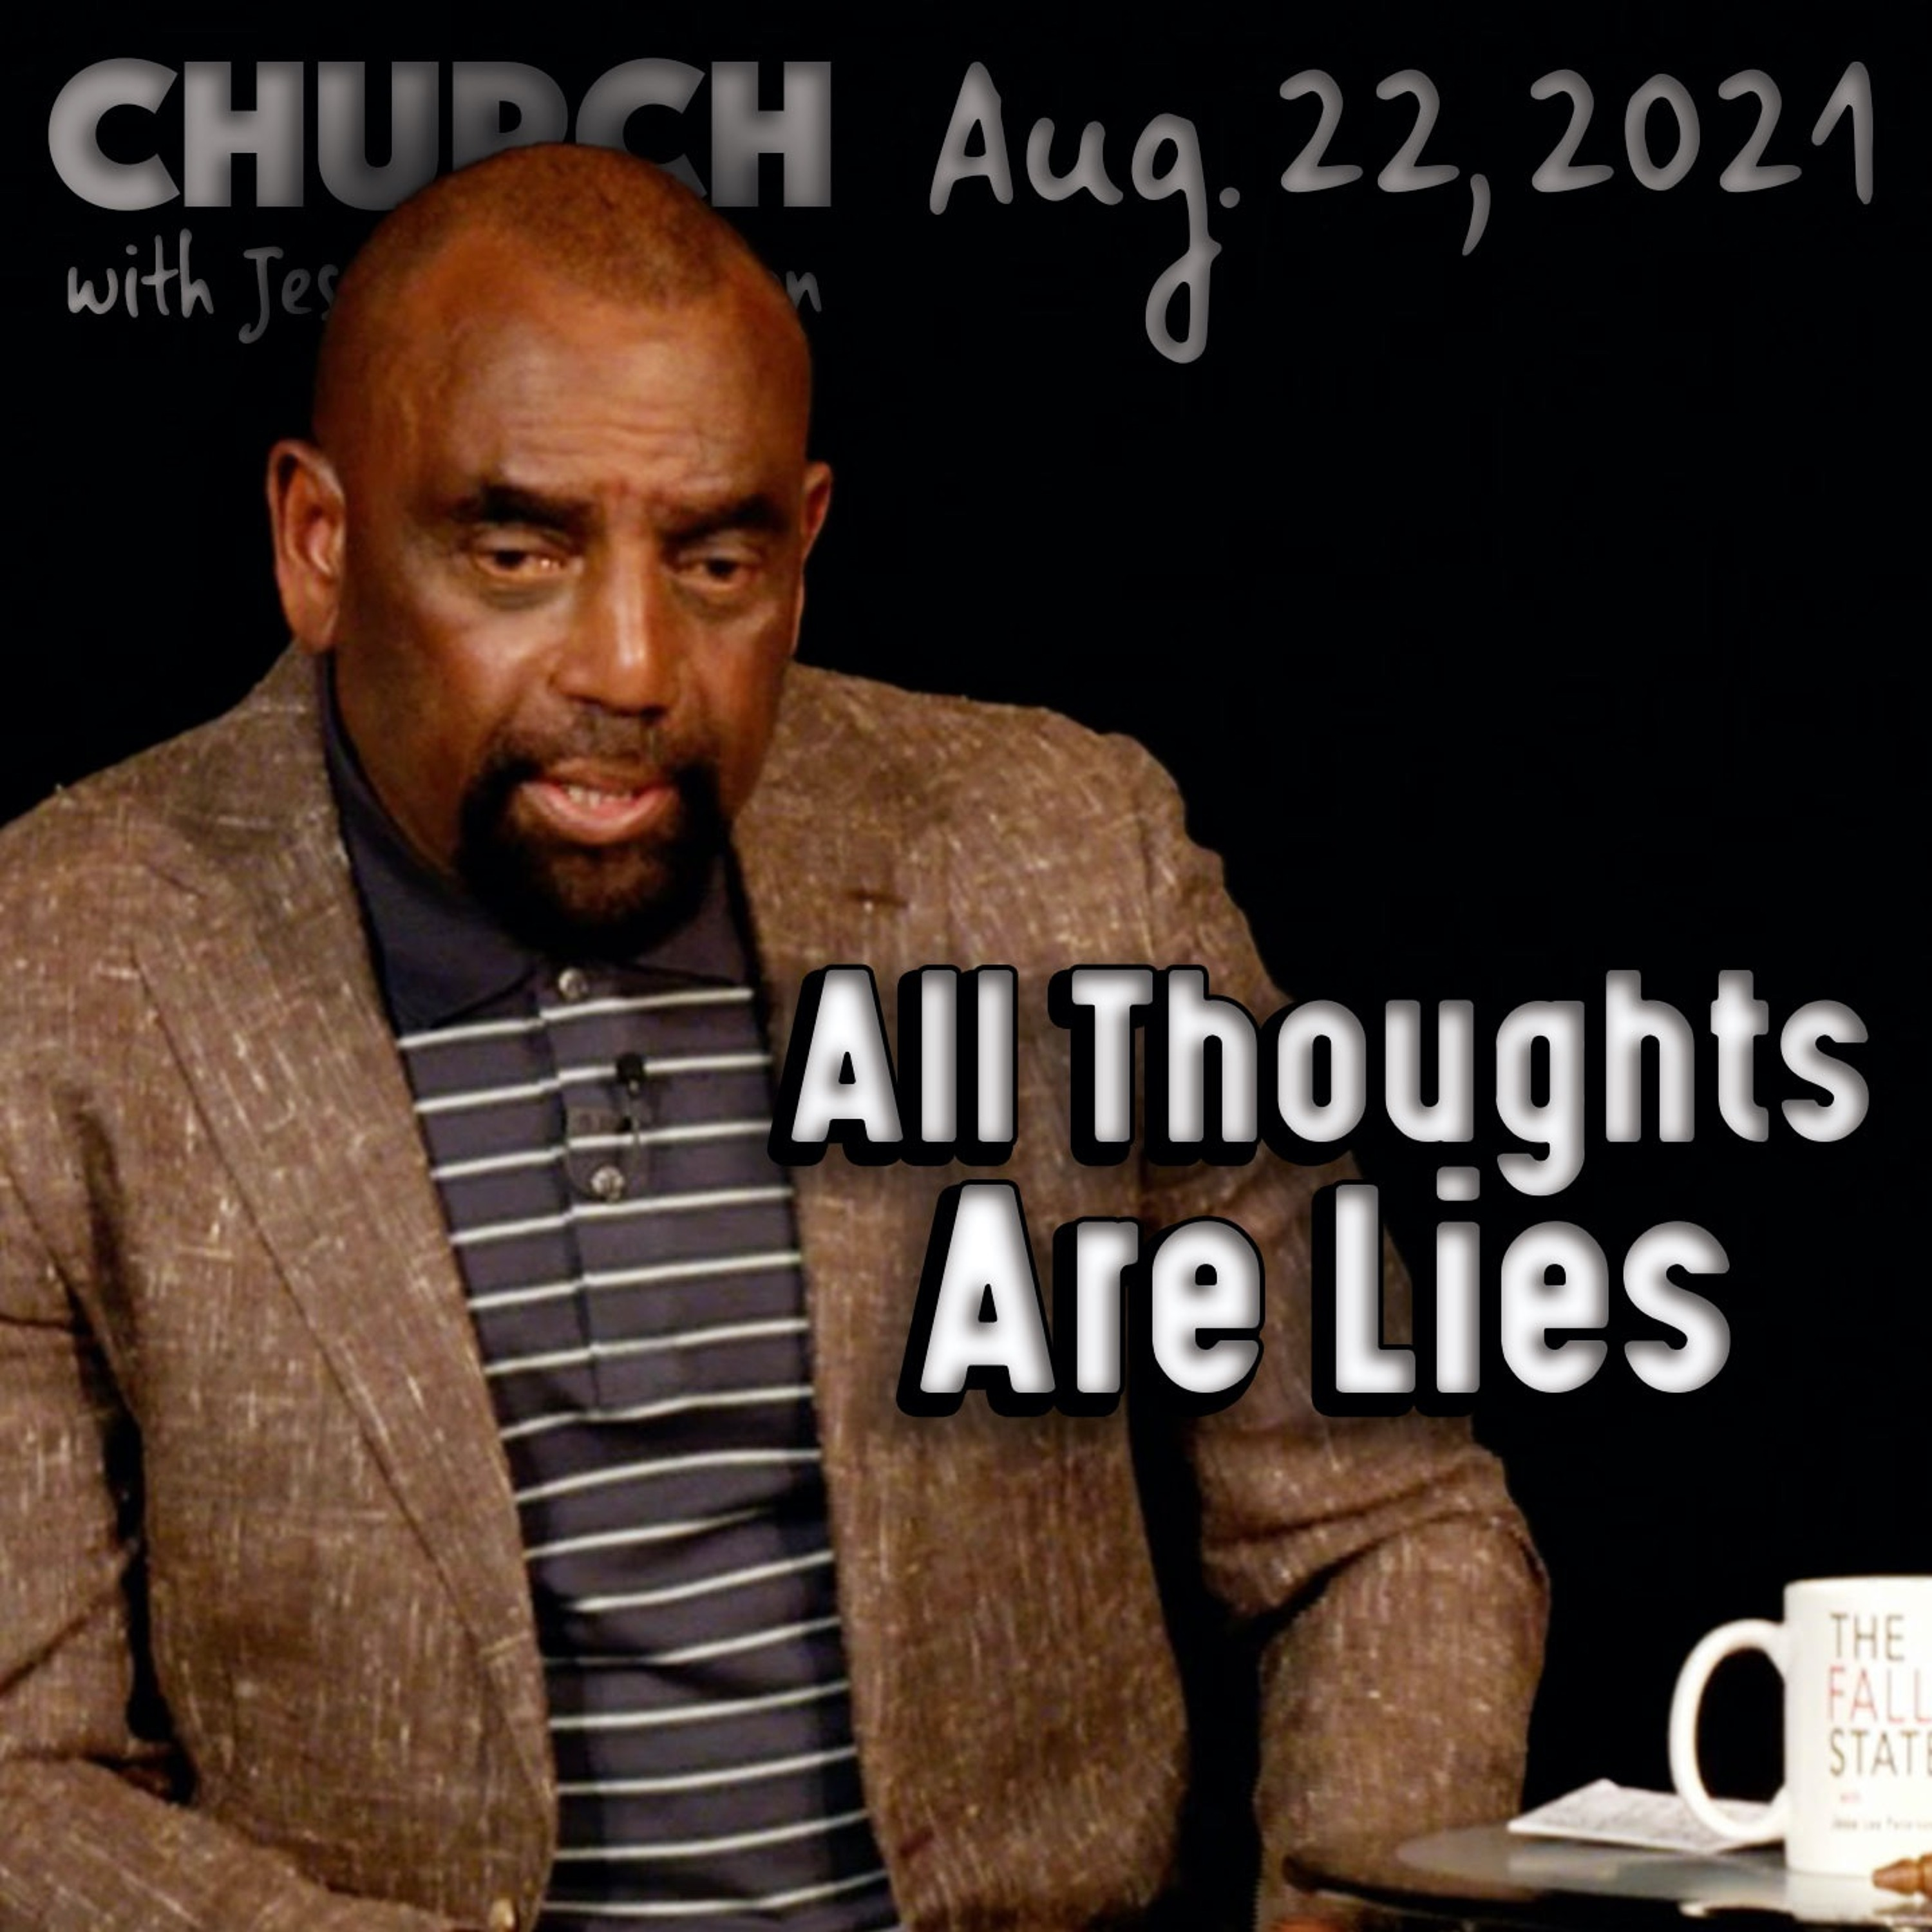 08/22/21 Difference Between Secular and Christian Intellectual? (Church)